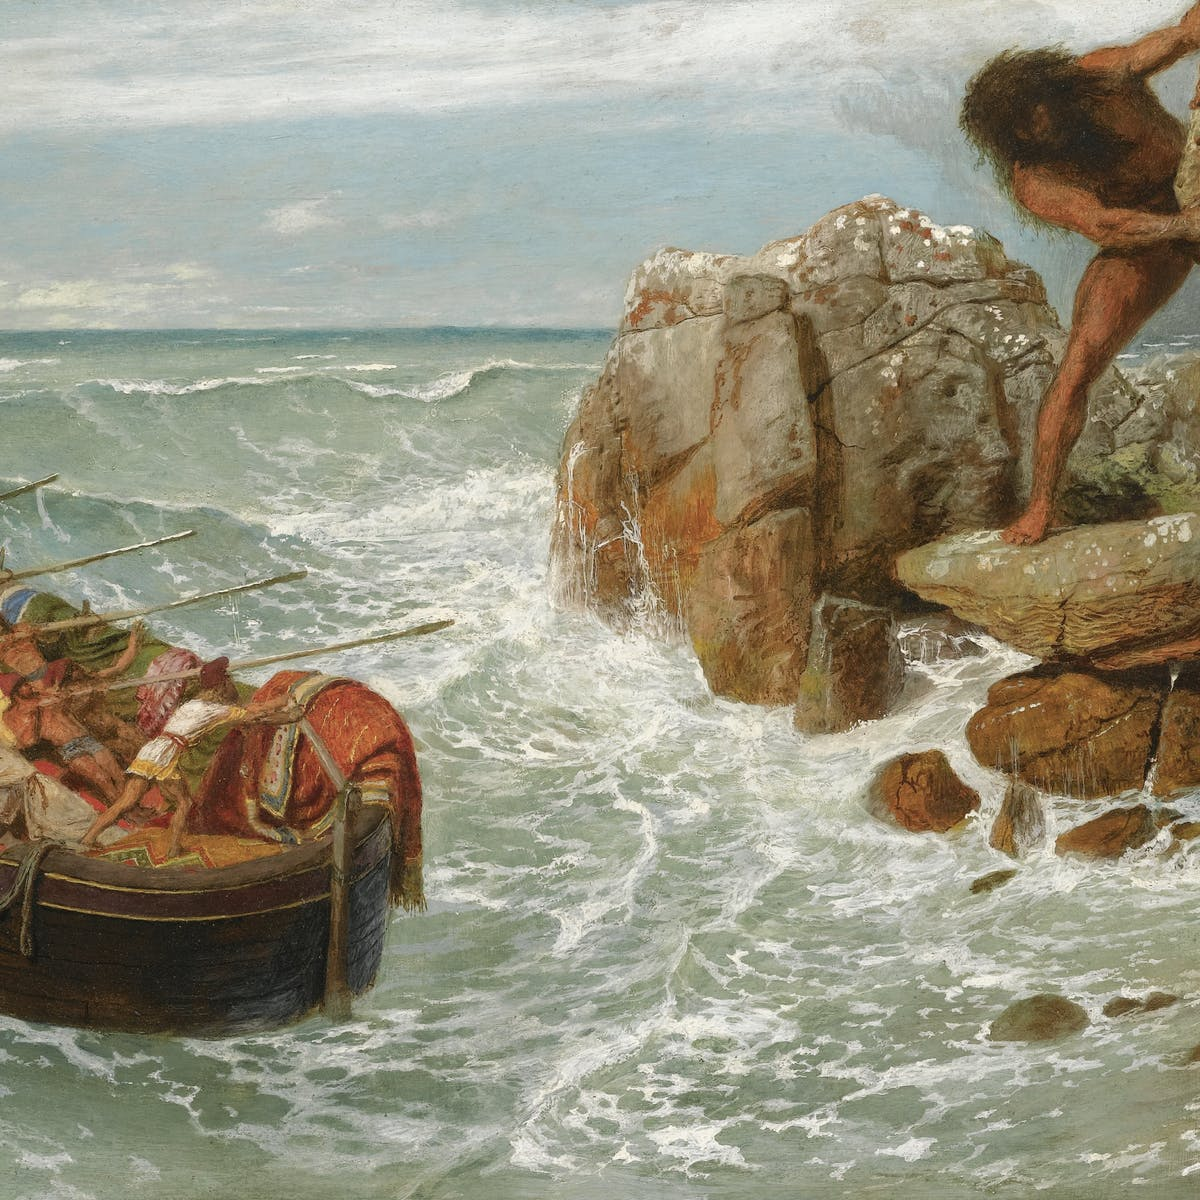 Guide to the Classics: Homer's Odyssey